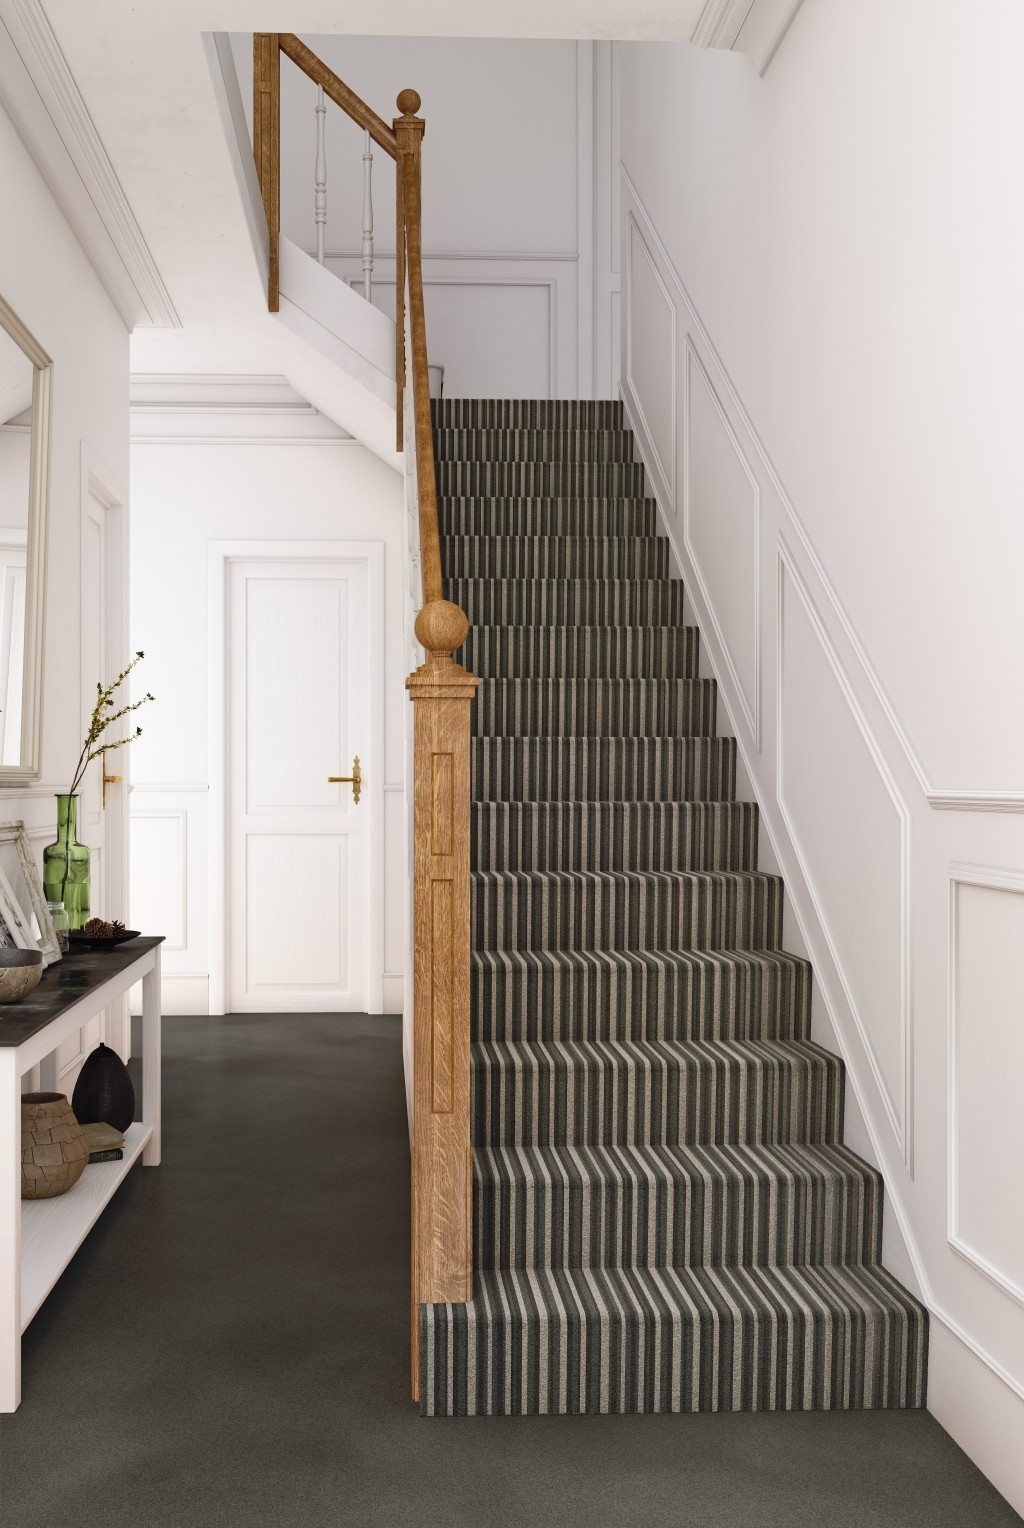 Stair Carpet Tapi Carpets Floors   Patterned Carpet For Stairs And Landing   Carpeting   Middle Open Concept   Diamond Uk Pattern   Striped Stair Carpet Entrance   Victorian Style